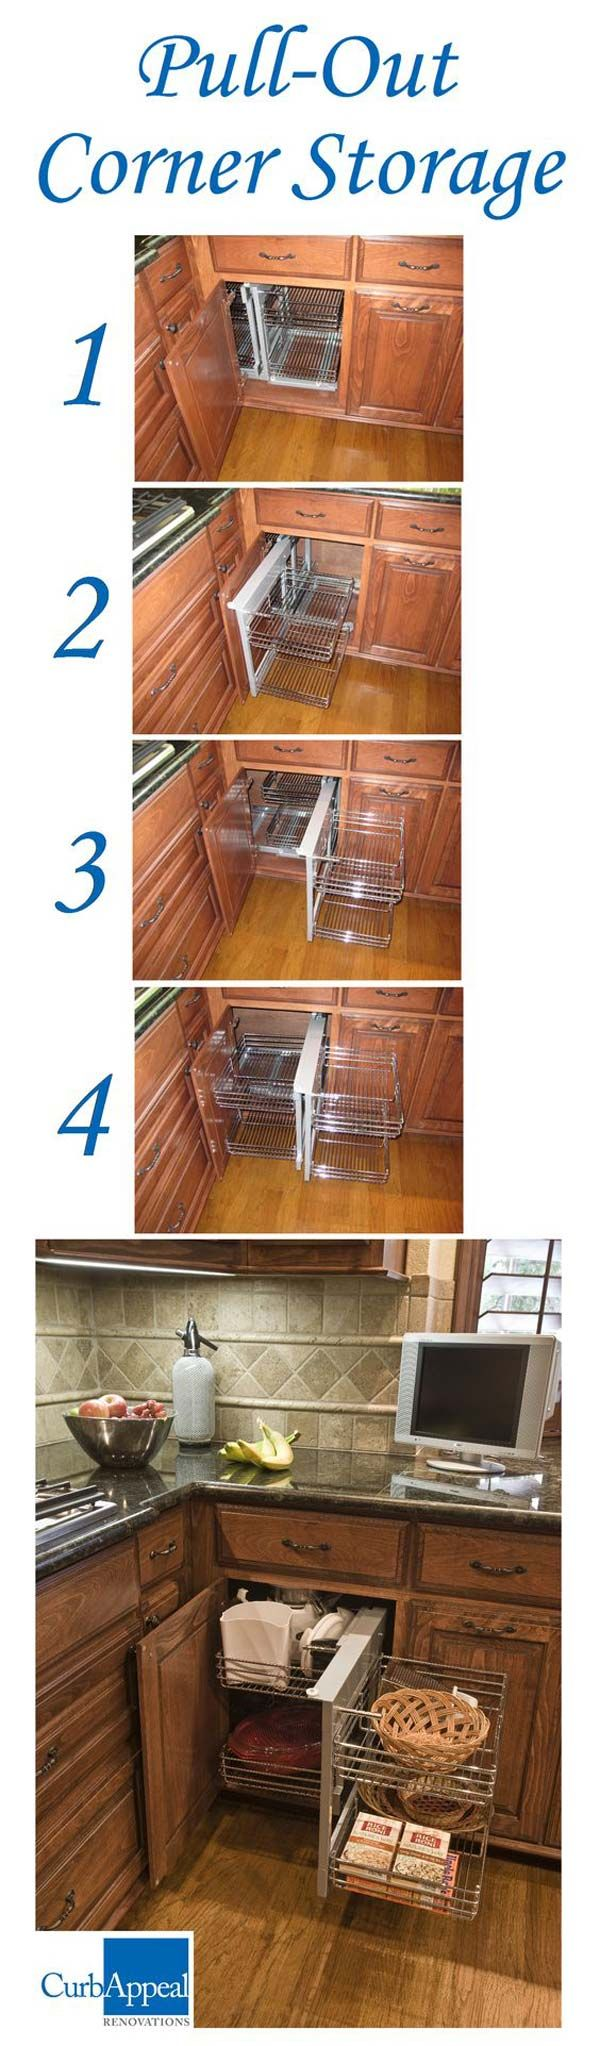 80 best Corner Storage Ideas images on Pinterest | Corner ...